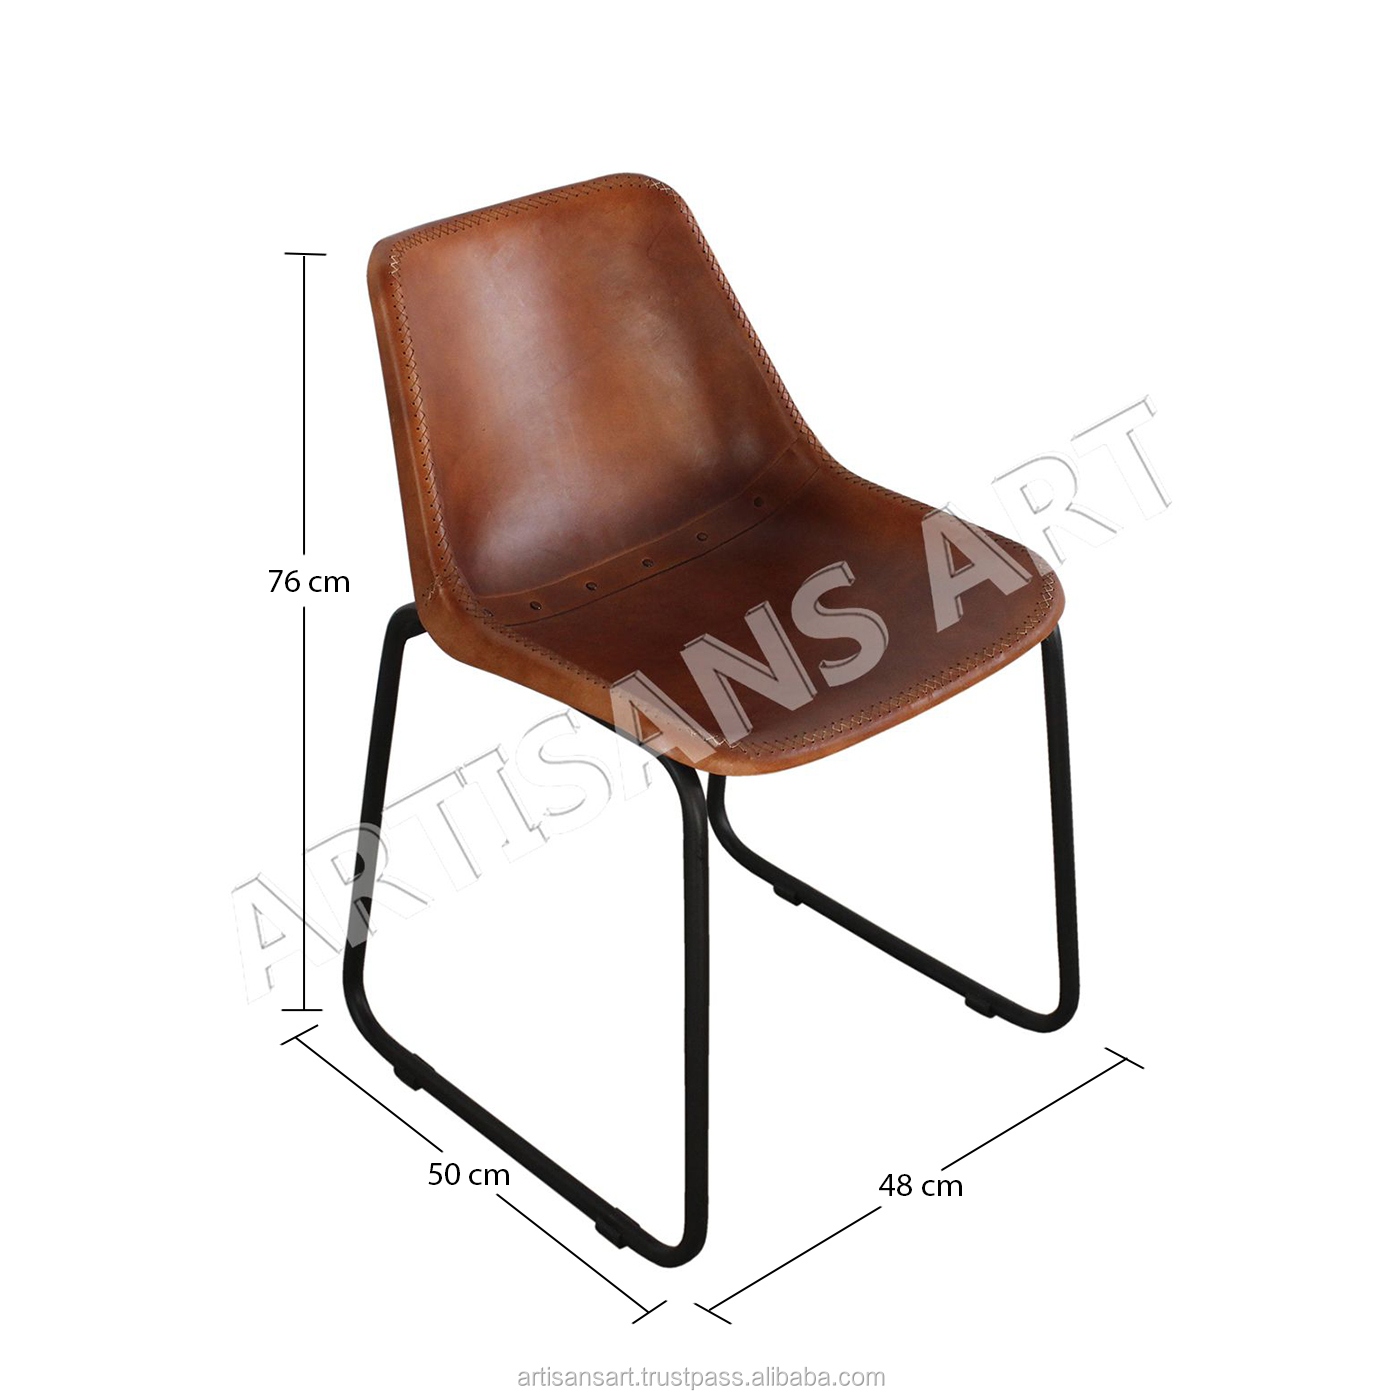 Discount Leather Chairs Industrial Leather Dining Chair Leather Cafe Chair Vintage Upholstery Home Furniture Buy Leather Chair Restaurant Chair Dining Leather Chairs